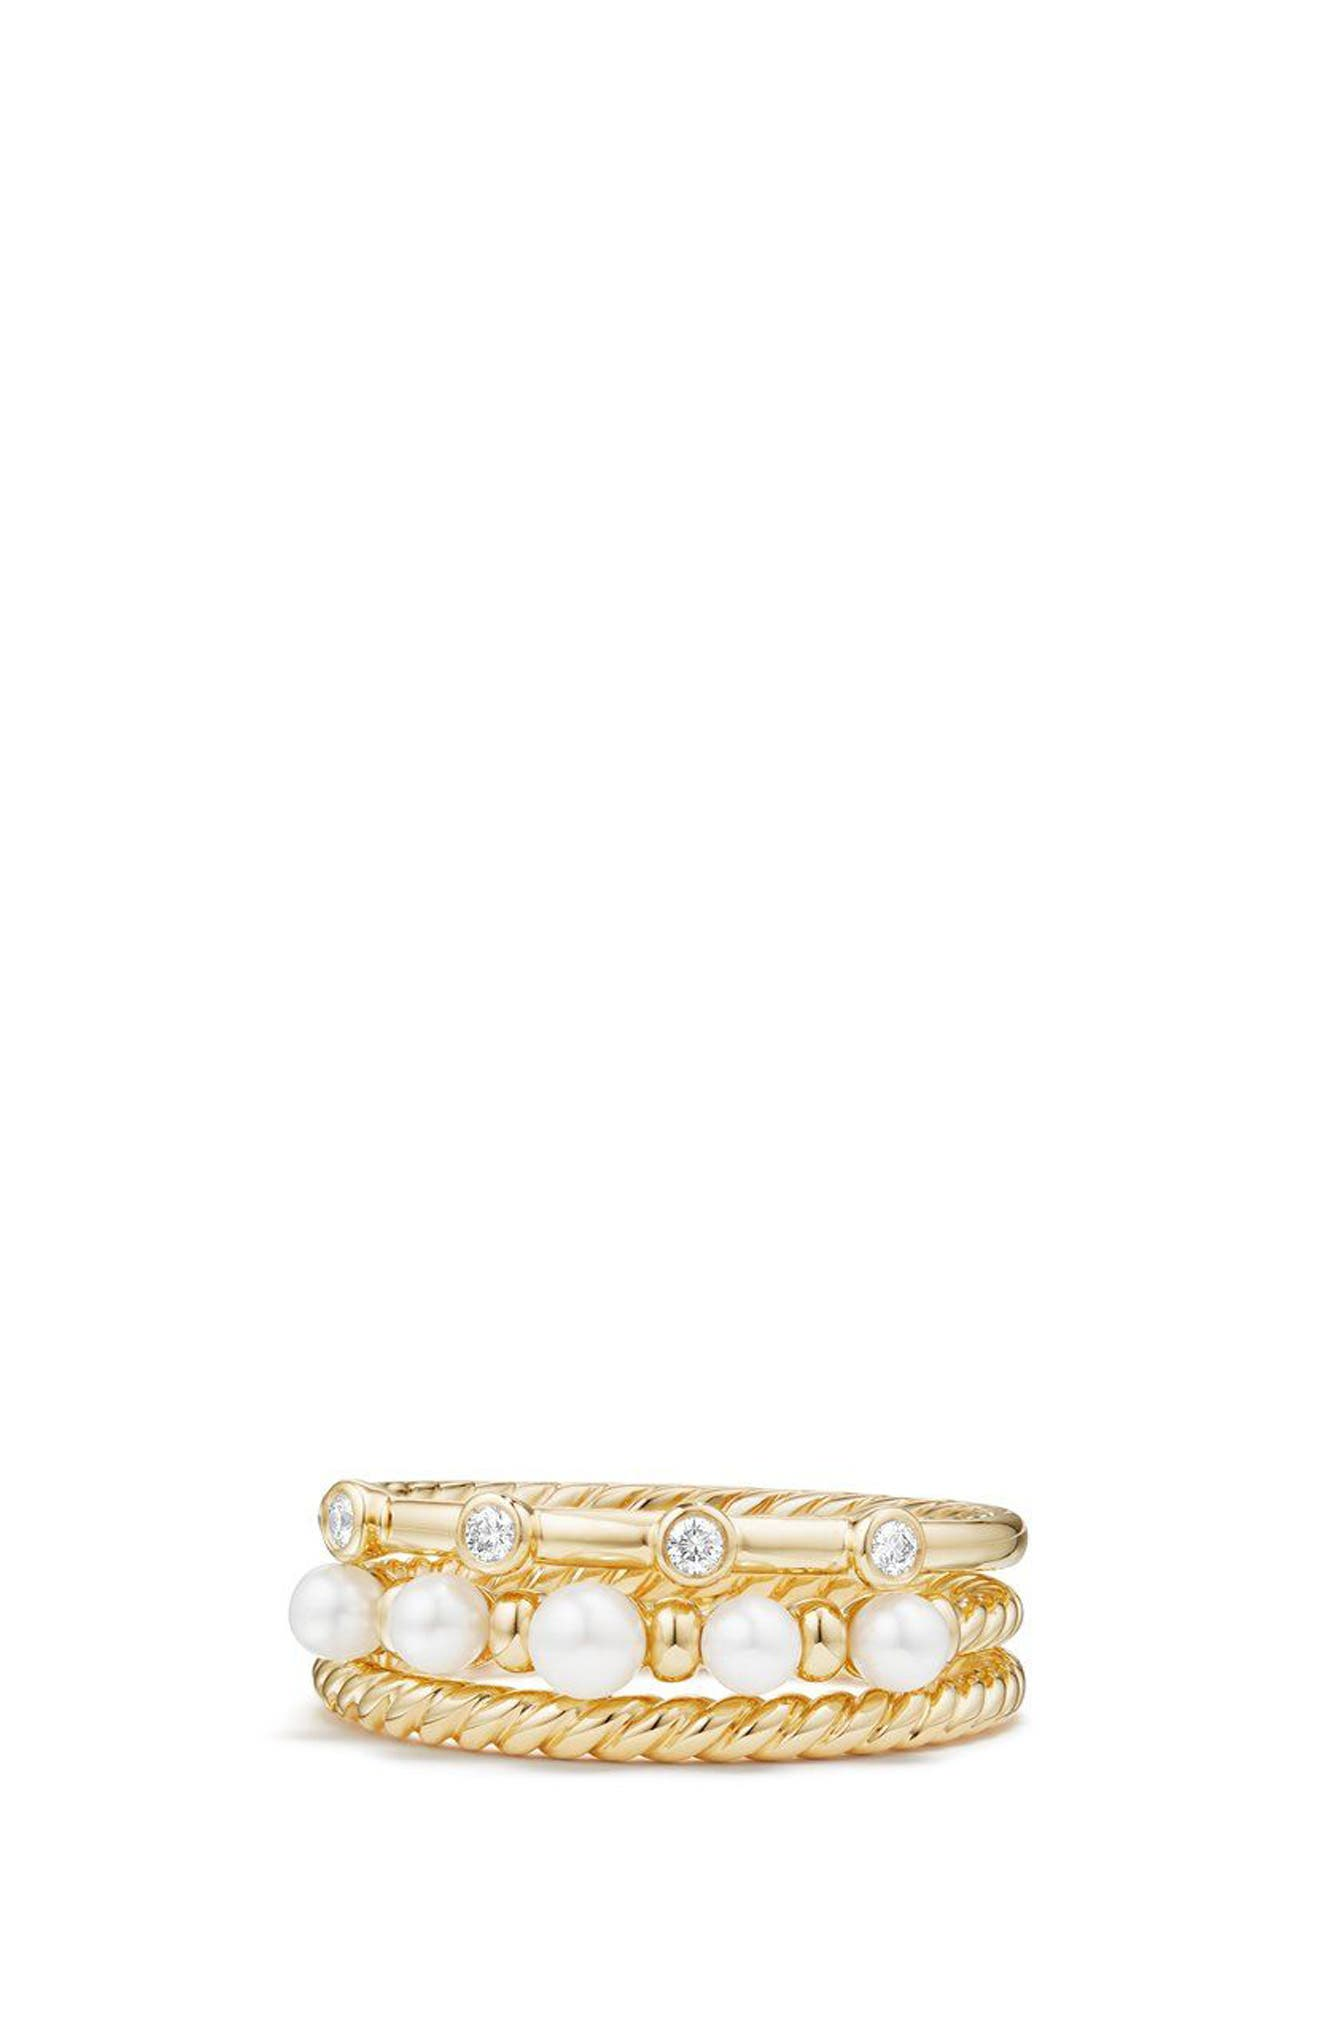 Petite Perle Narrow Multi Row Ring with Pearls and Diamonds,                             Alternate thumbnail 2, color,                             Gold/ Diamond/ Pearl